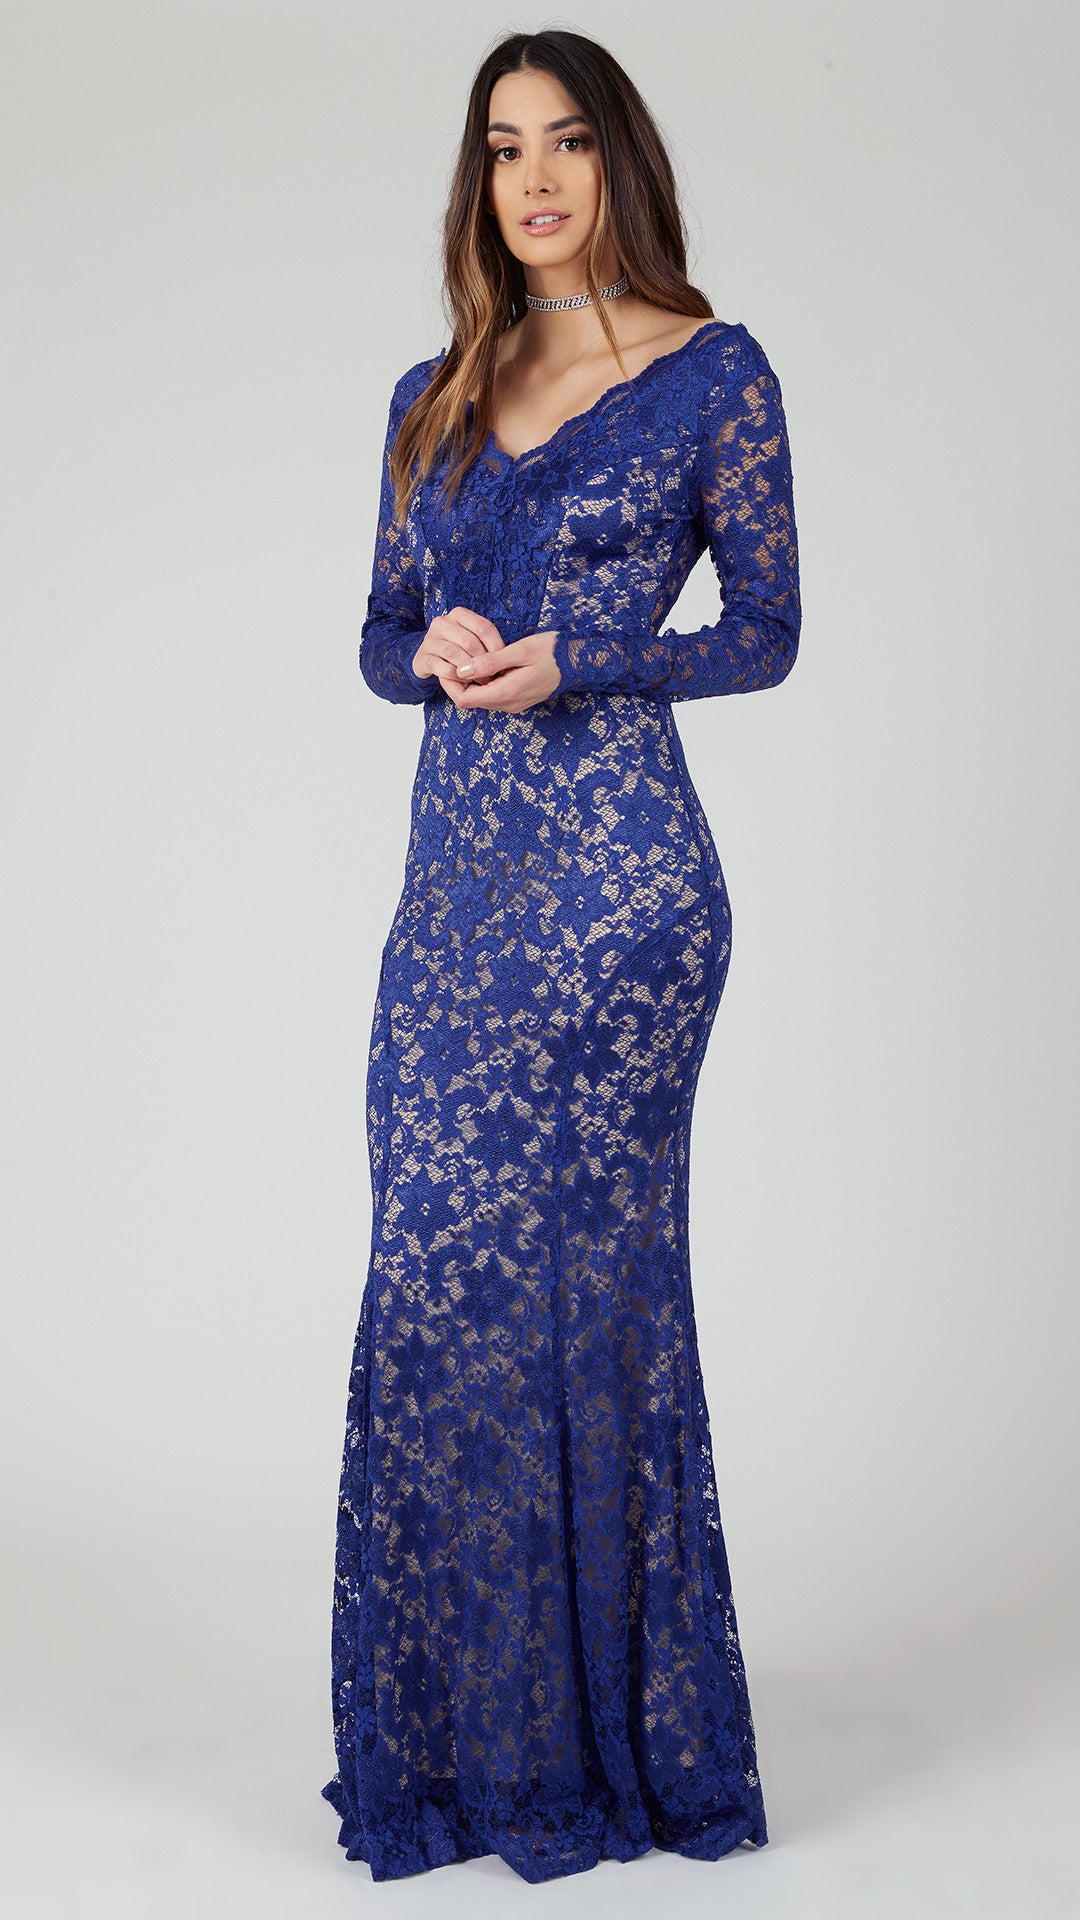 Timeless or trending, our plus size maxi dresses make a style statement anywhere you go! A covetable selection, our cool maxi dress silhouettes run from strappy sundresses to flowy off-the-shoulder and kimono-style wrap dresses.